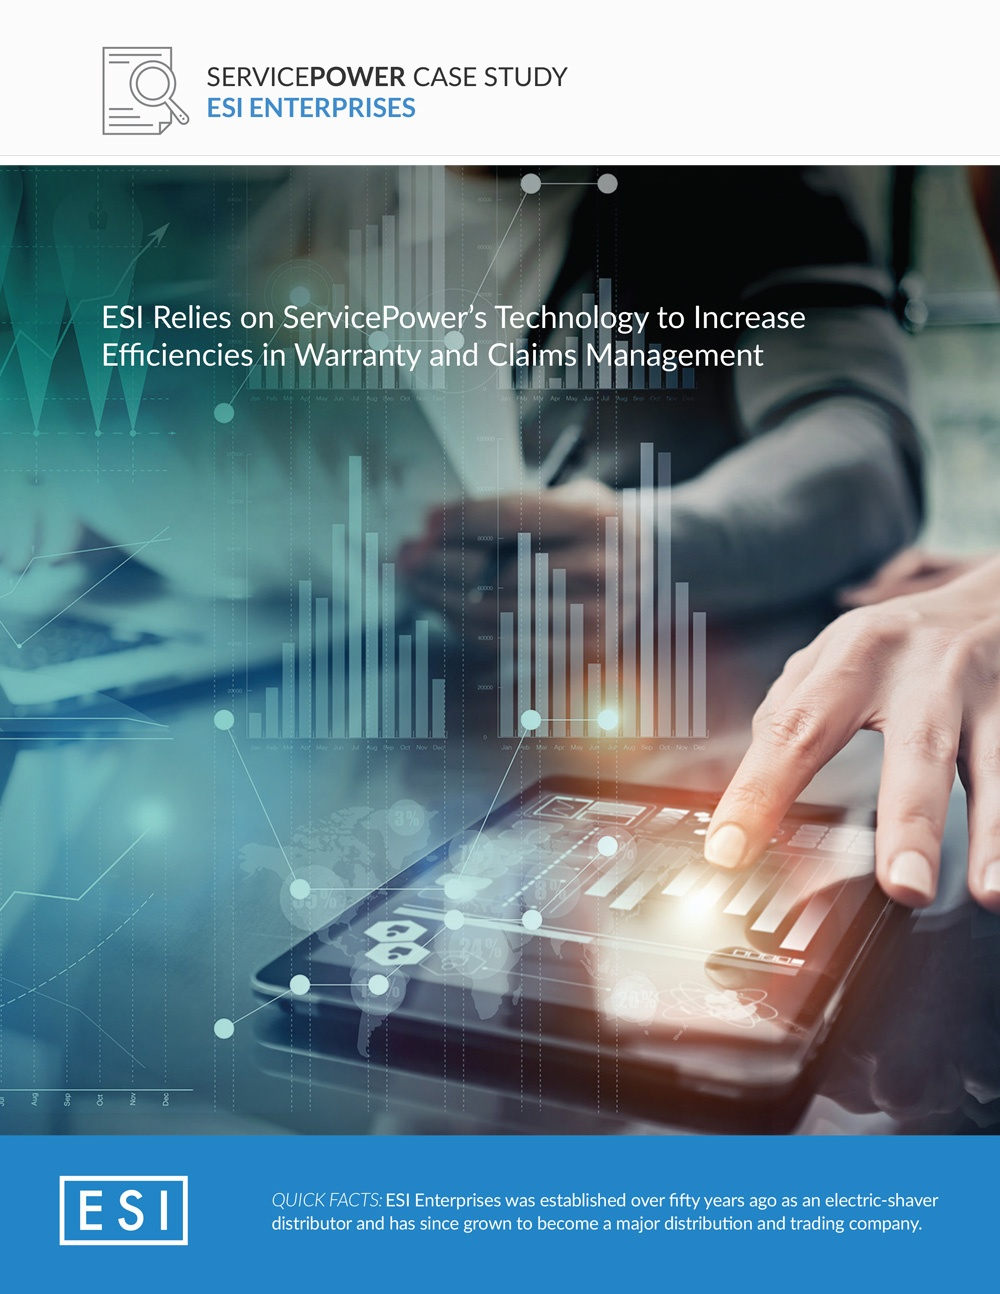 ESI Increases Efficiencies in Warranty and Claims Management